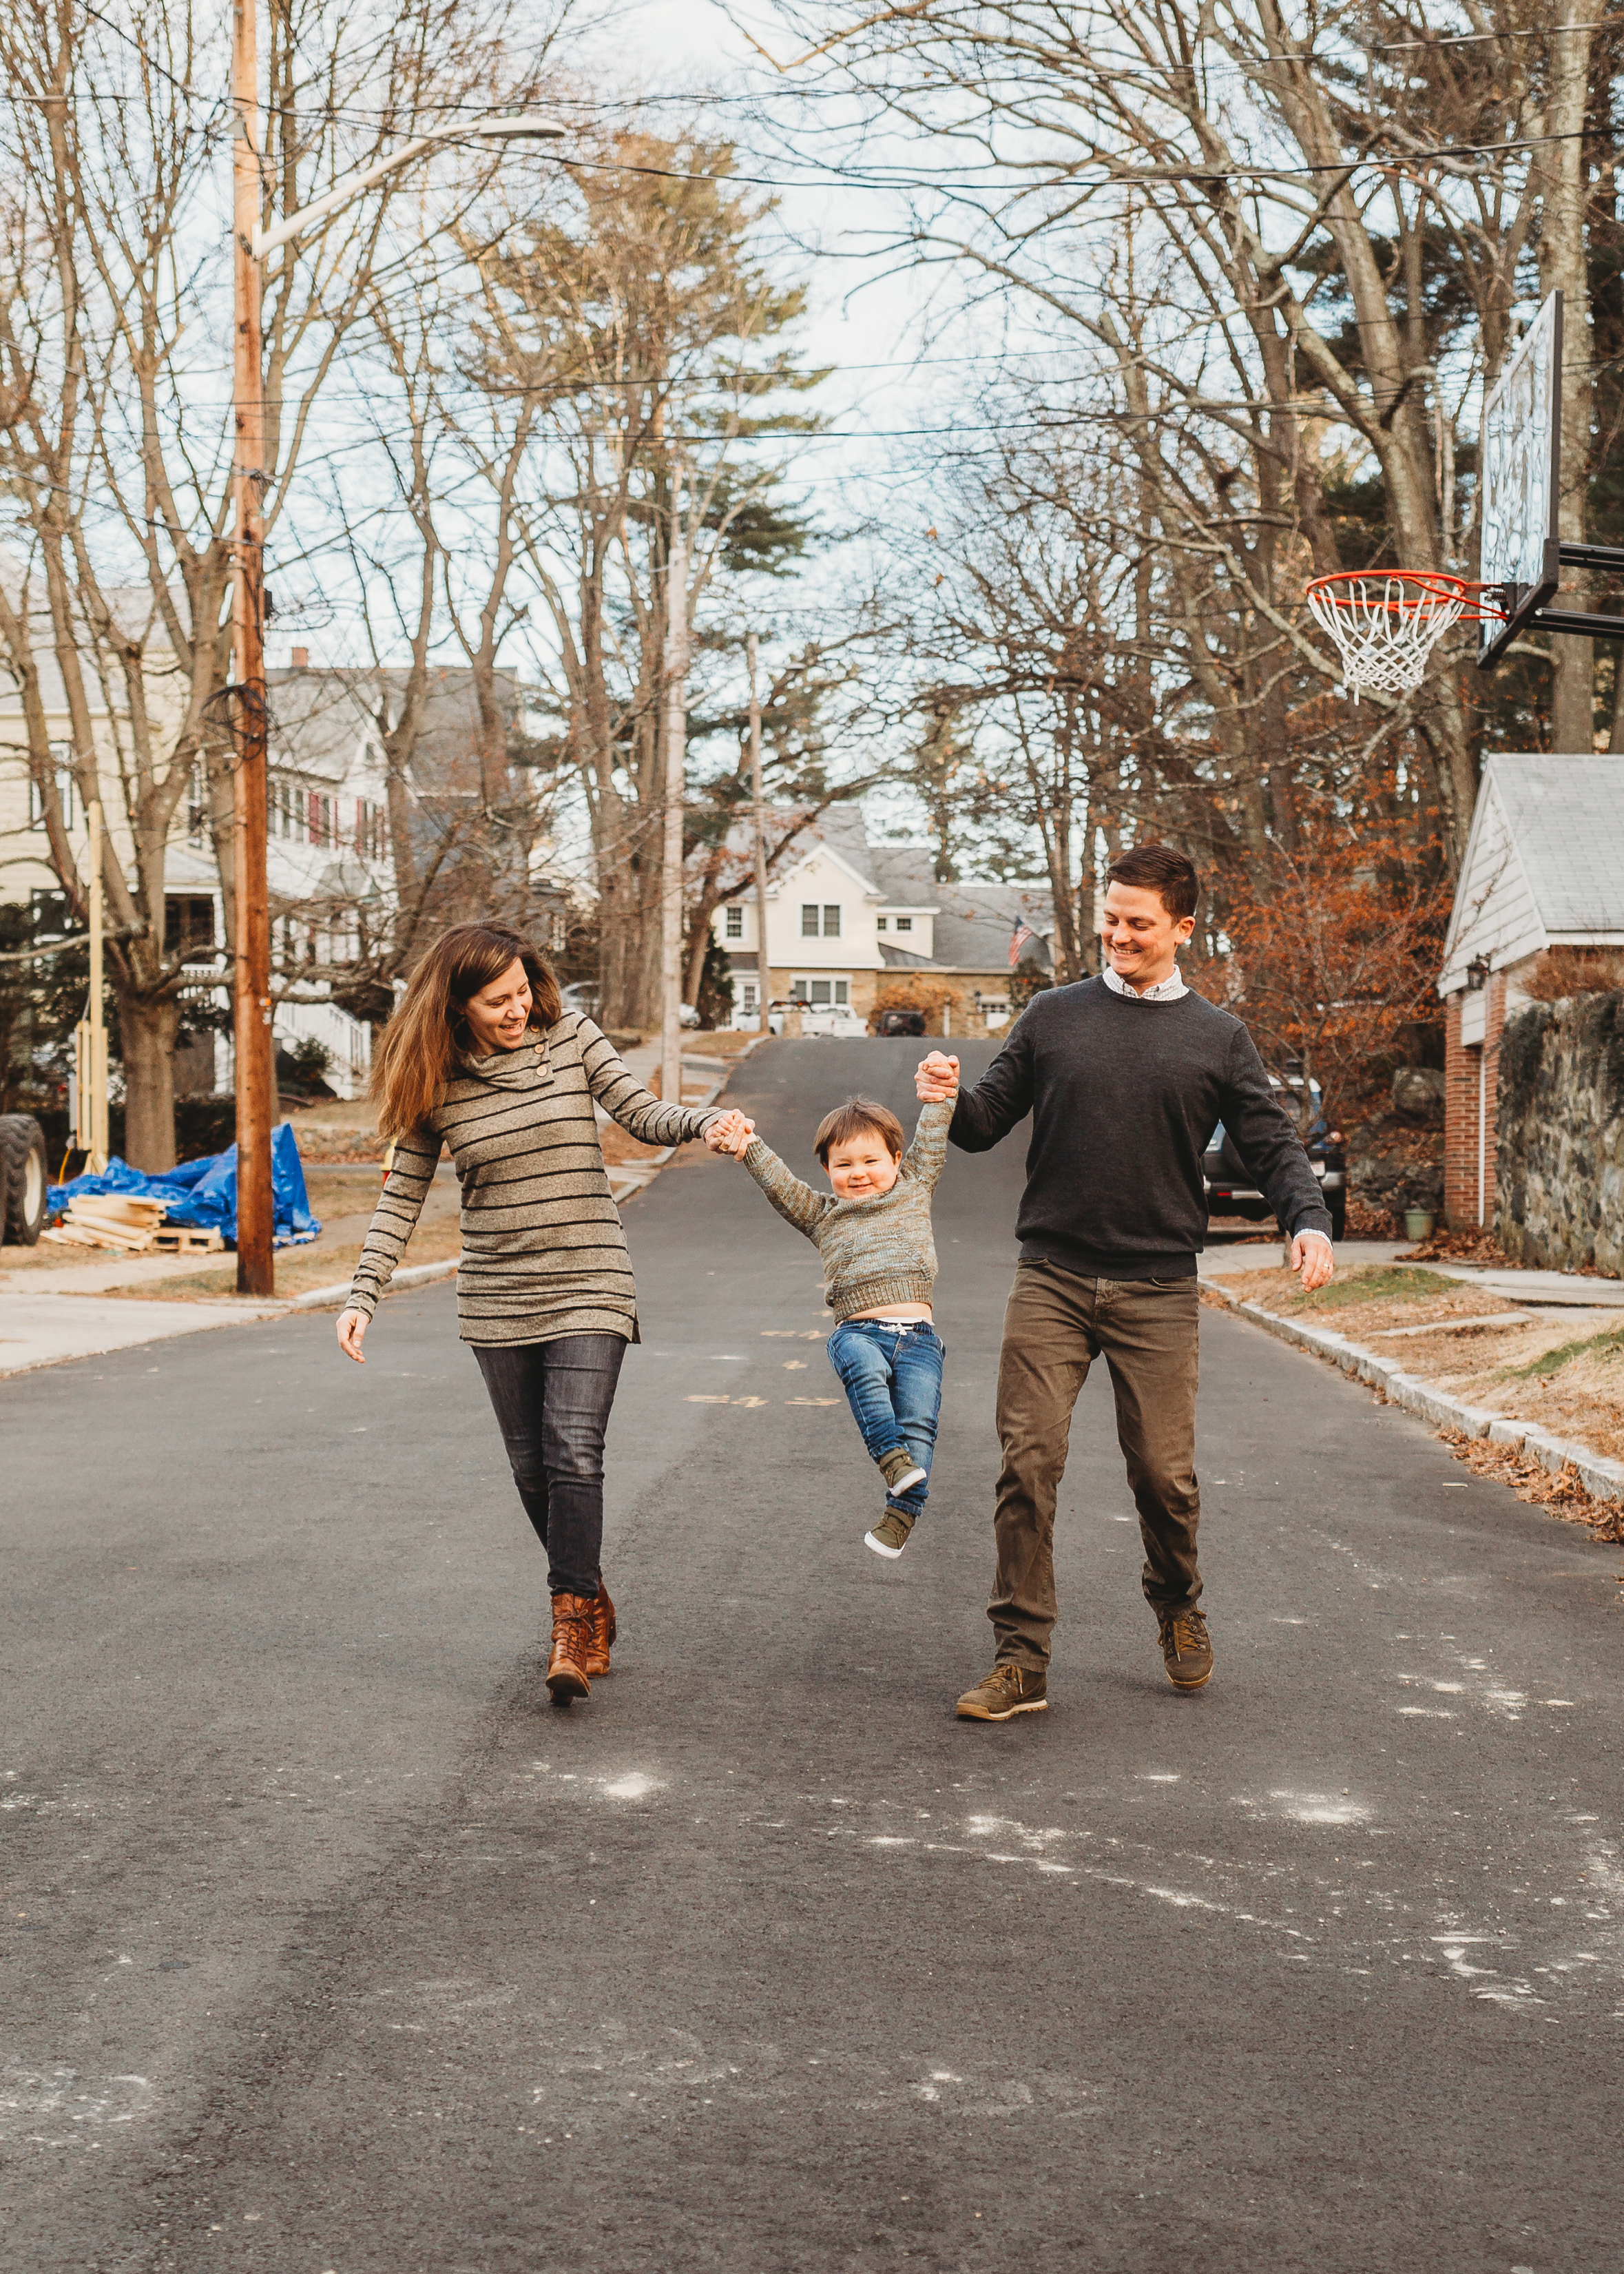 """Swing me!"" On the quiet street of their new home in Melrose. Boston family photographer Joy LeDuc."